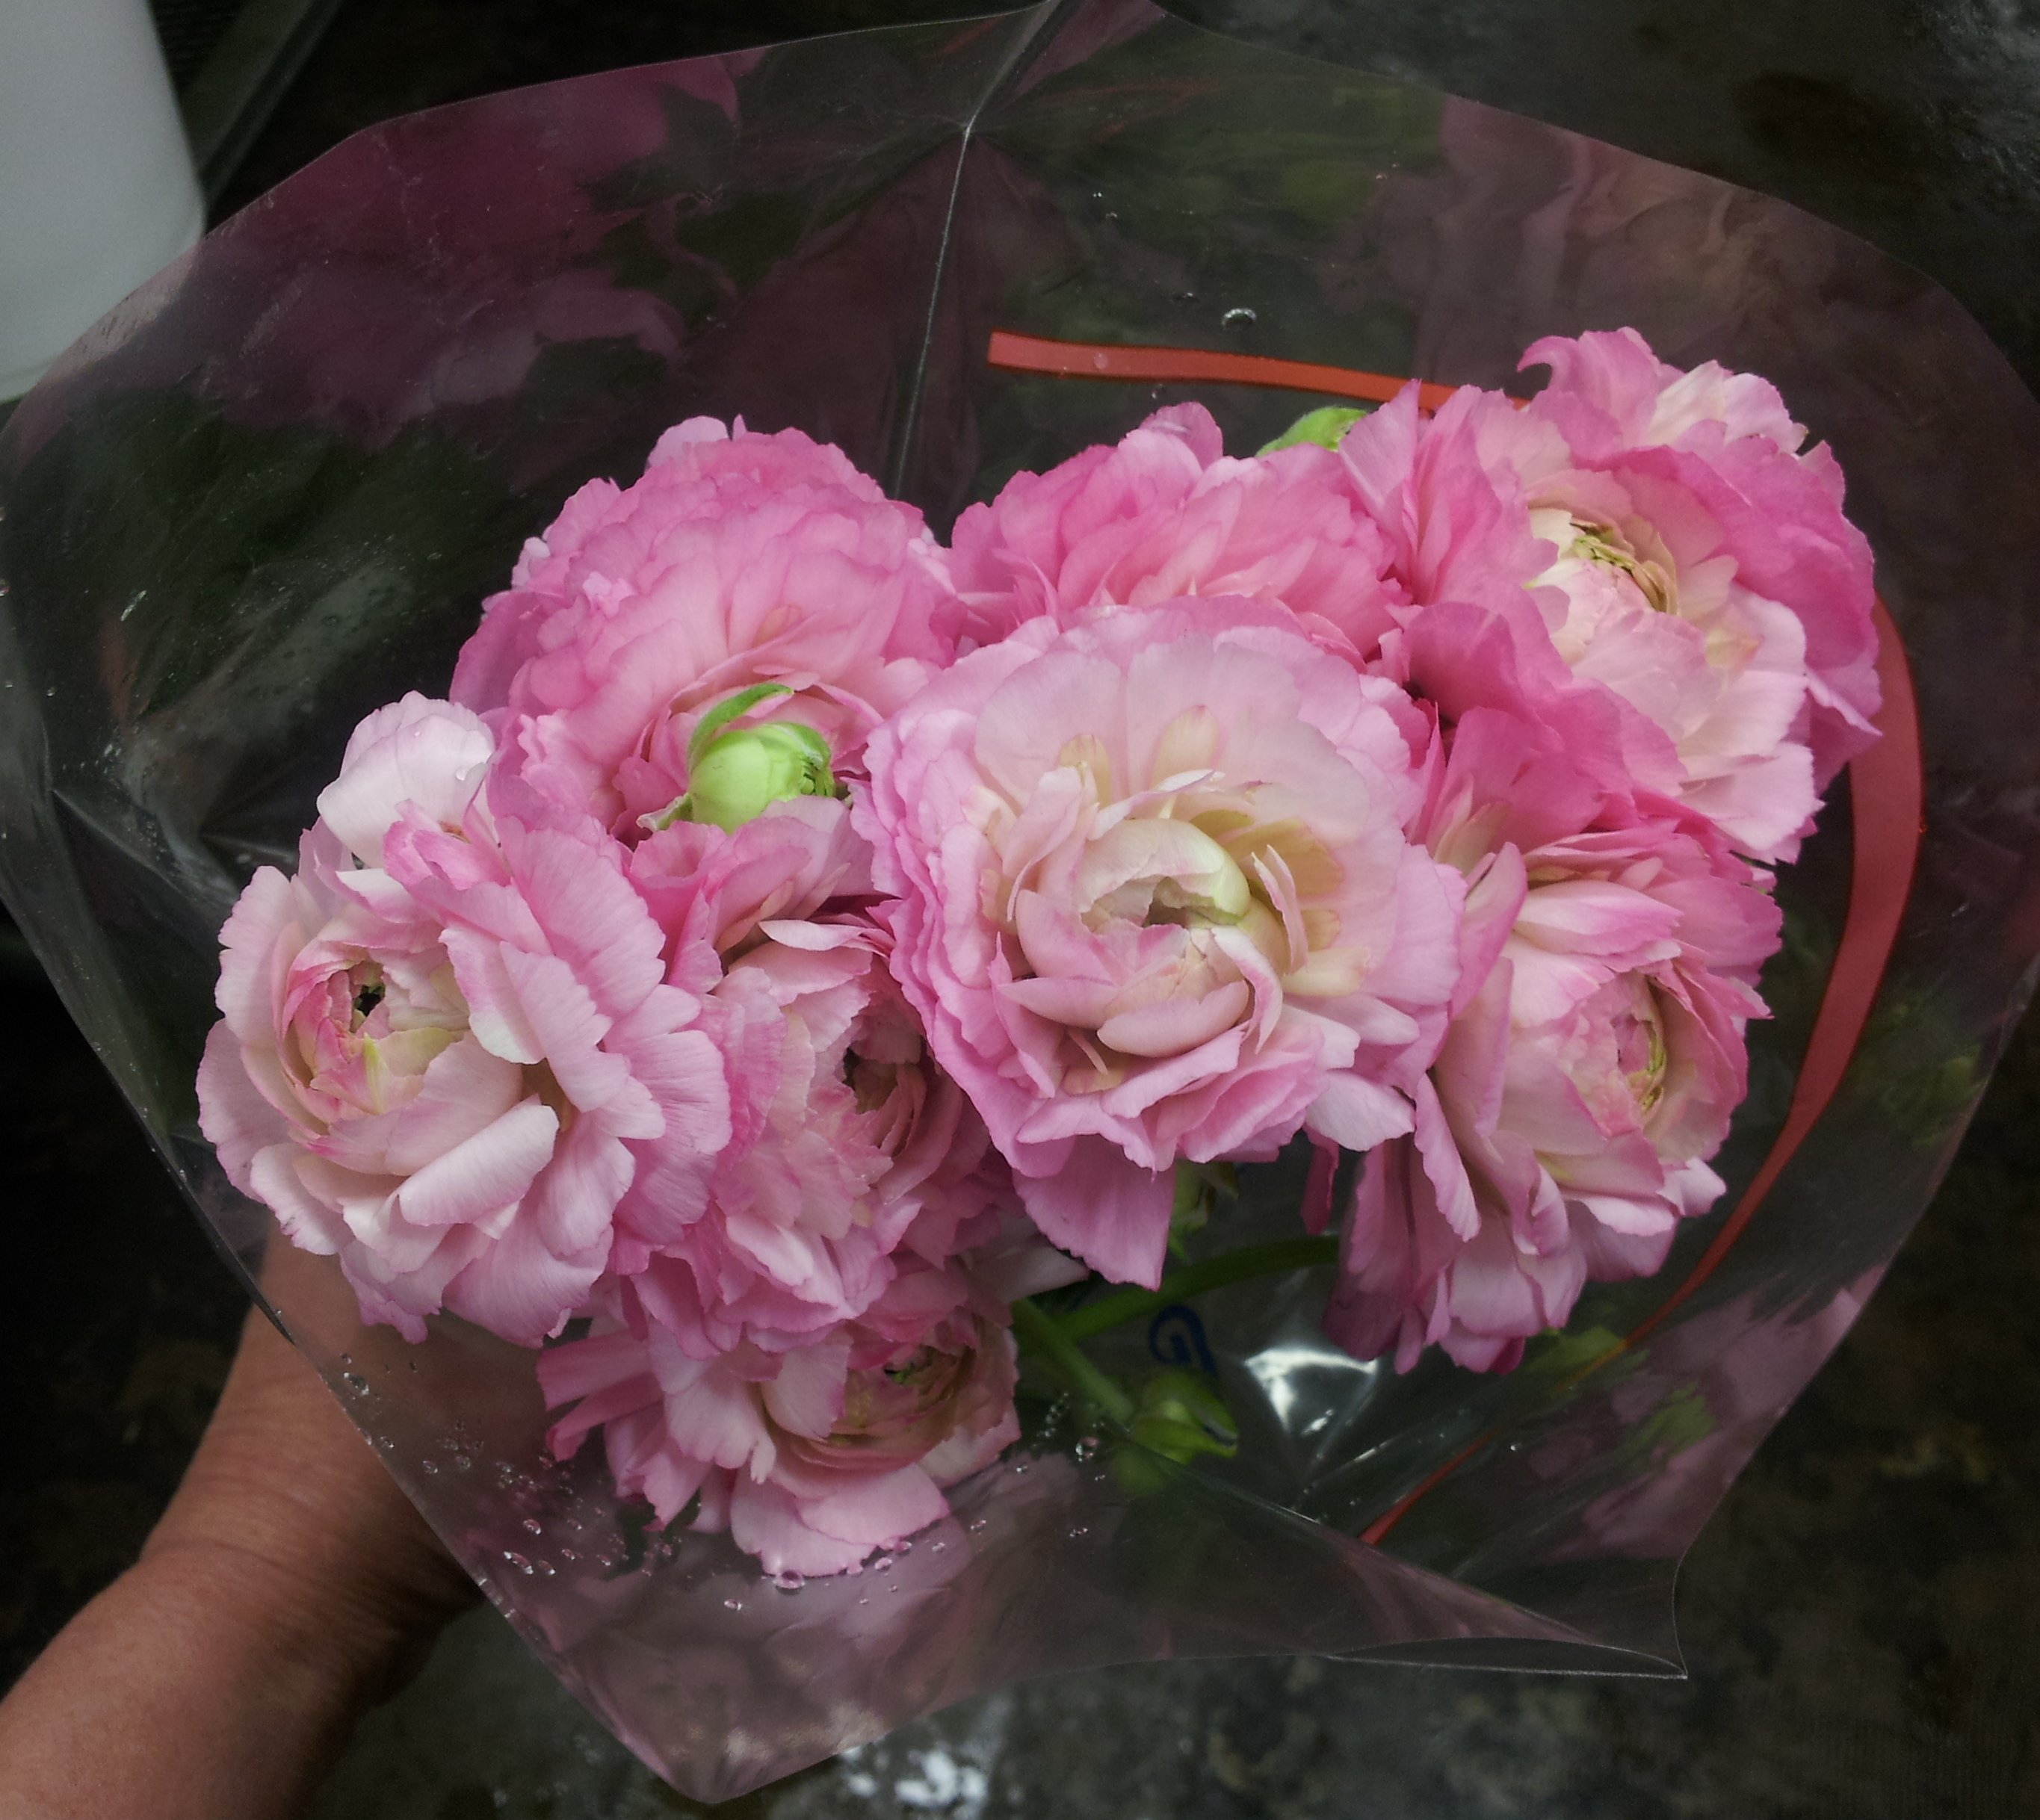 Wedding Flower Prices Can You Save by Doing it Yourself